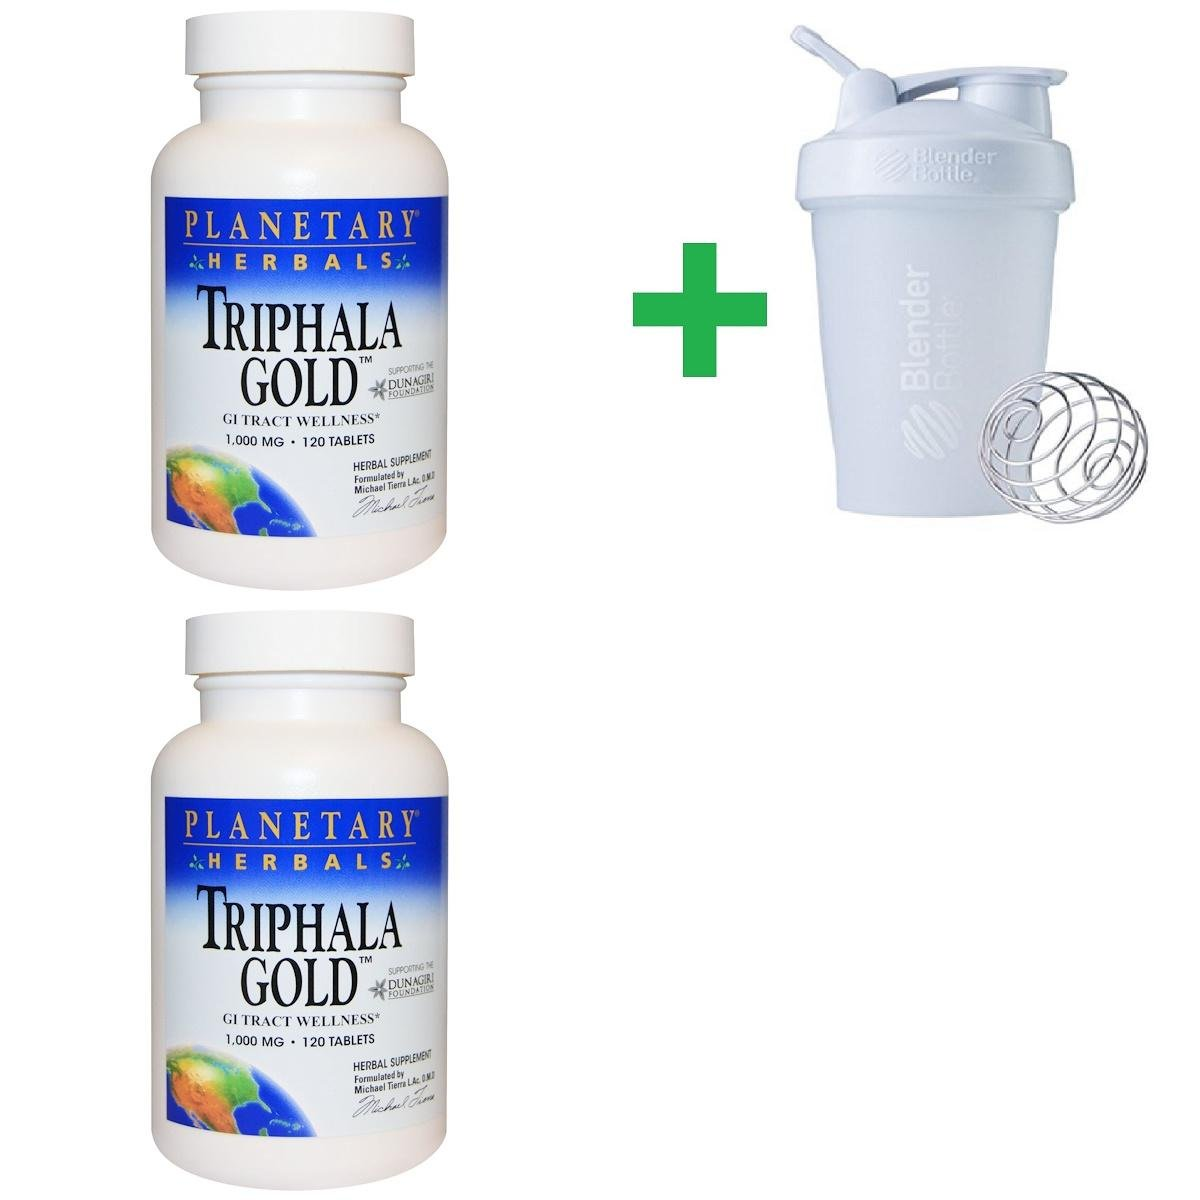 Planetary Herbals, Triphala Gold, GI Tract Wellness, 1,000 mg, 120 Tablets(2 PCS)+ Assorted Sundesa, BlenderBottle, Classic with Loop, 20 oz